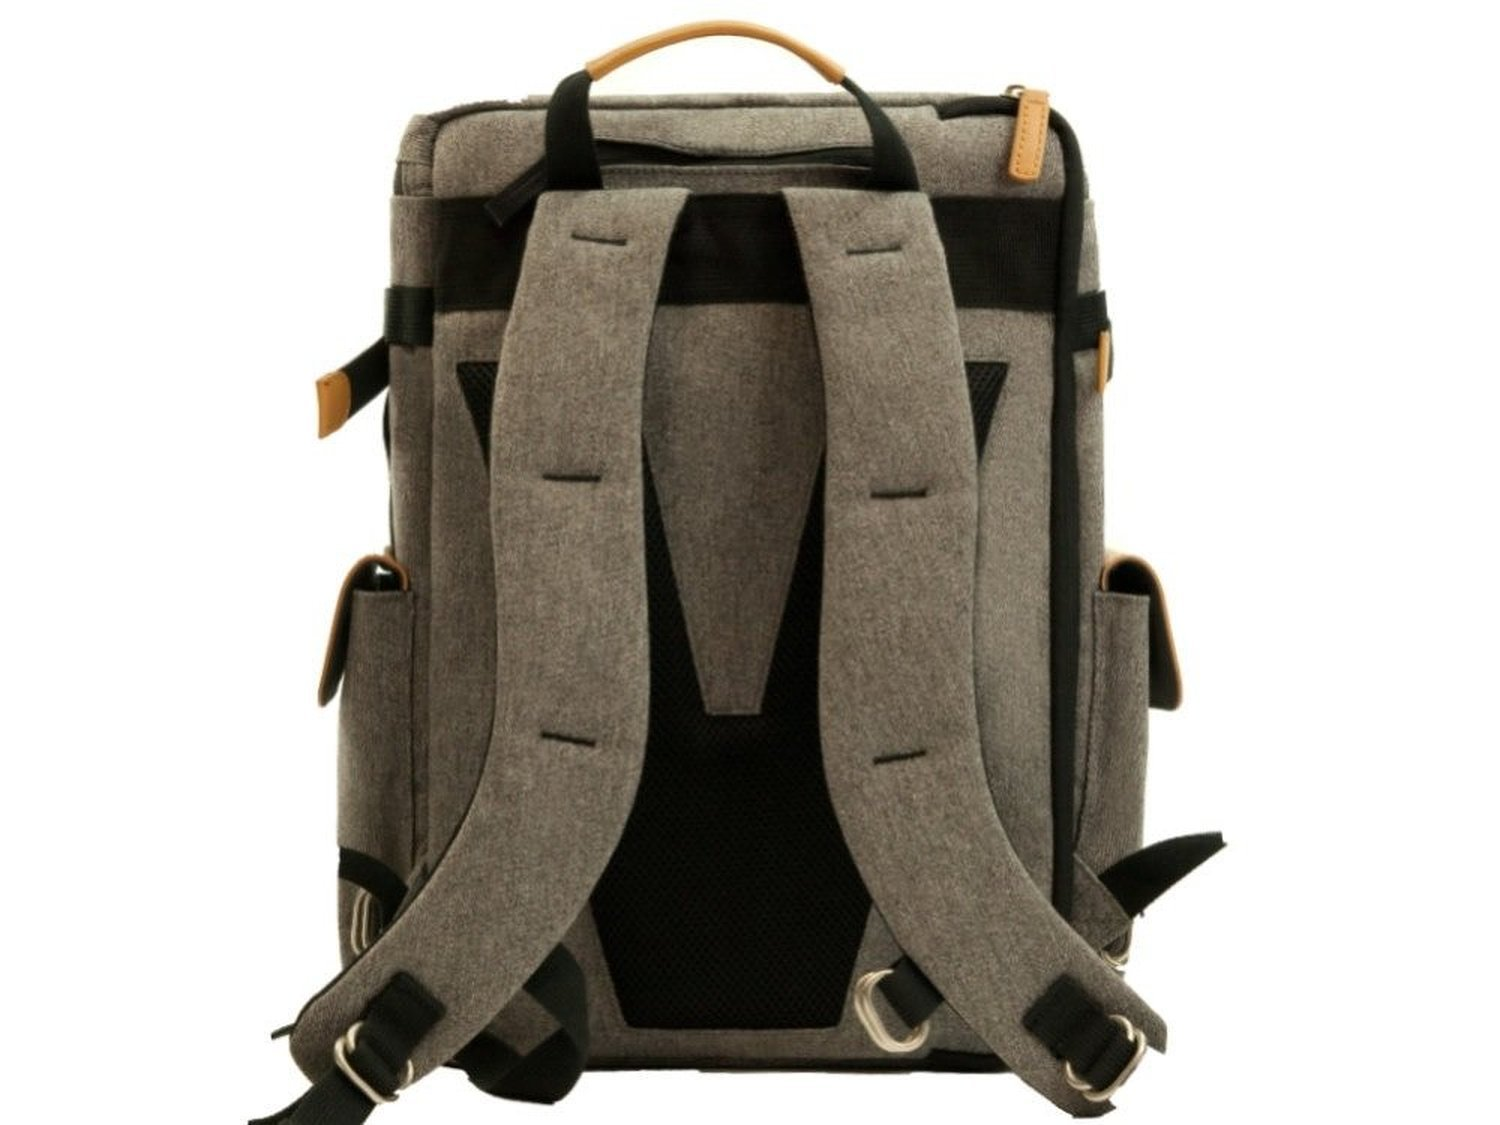 Venque Craft Co. CamPro Camera Backpack (Grey) by Venque Craft Co. (Image #3)